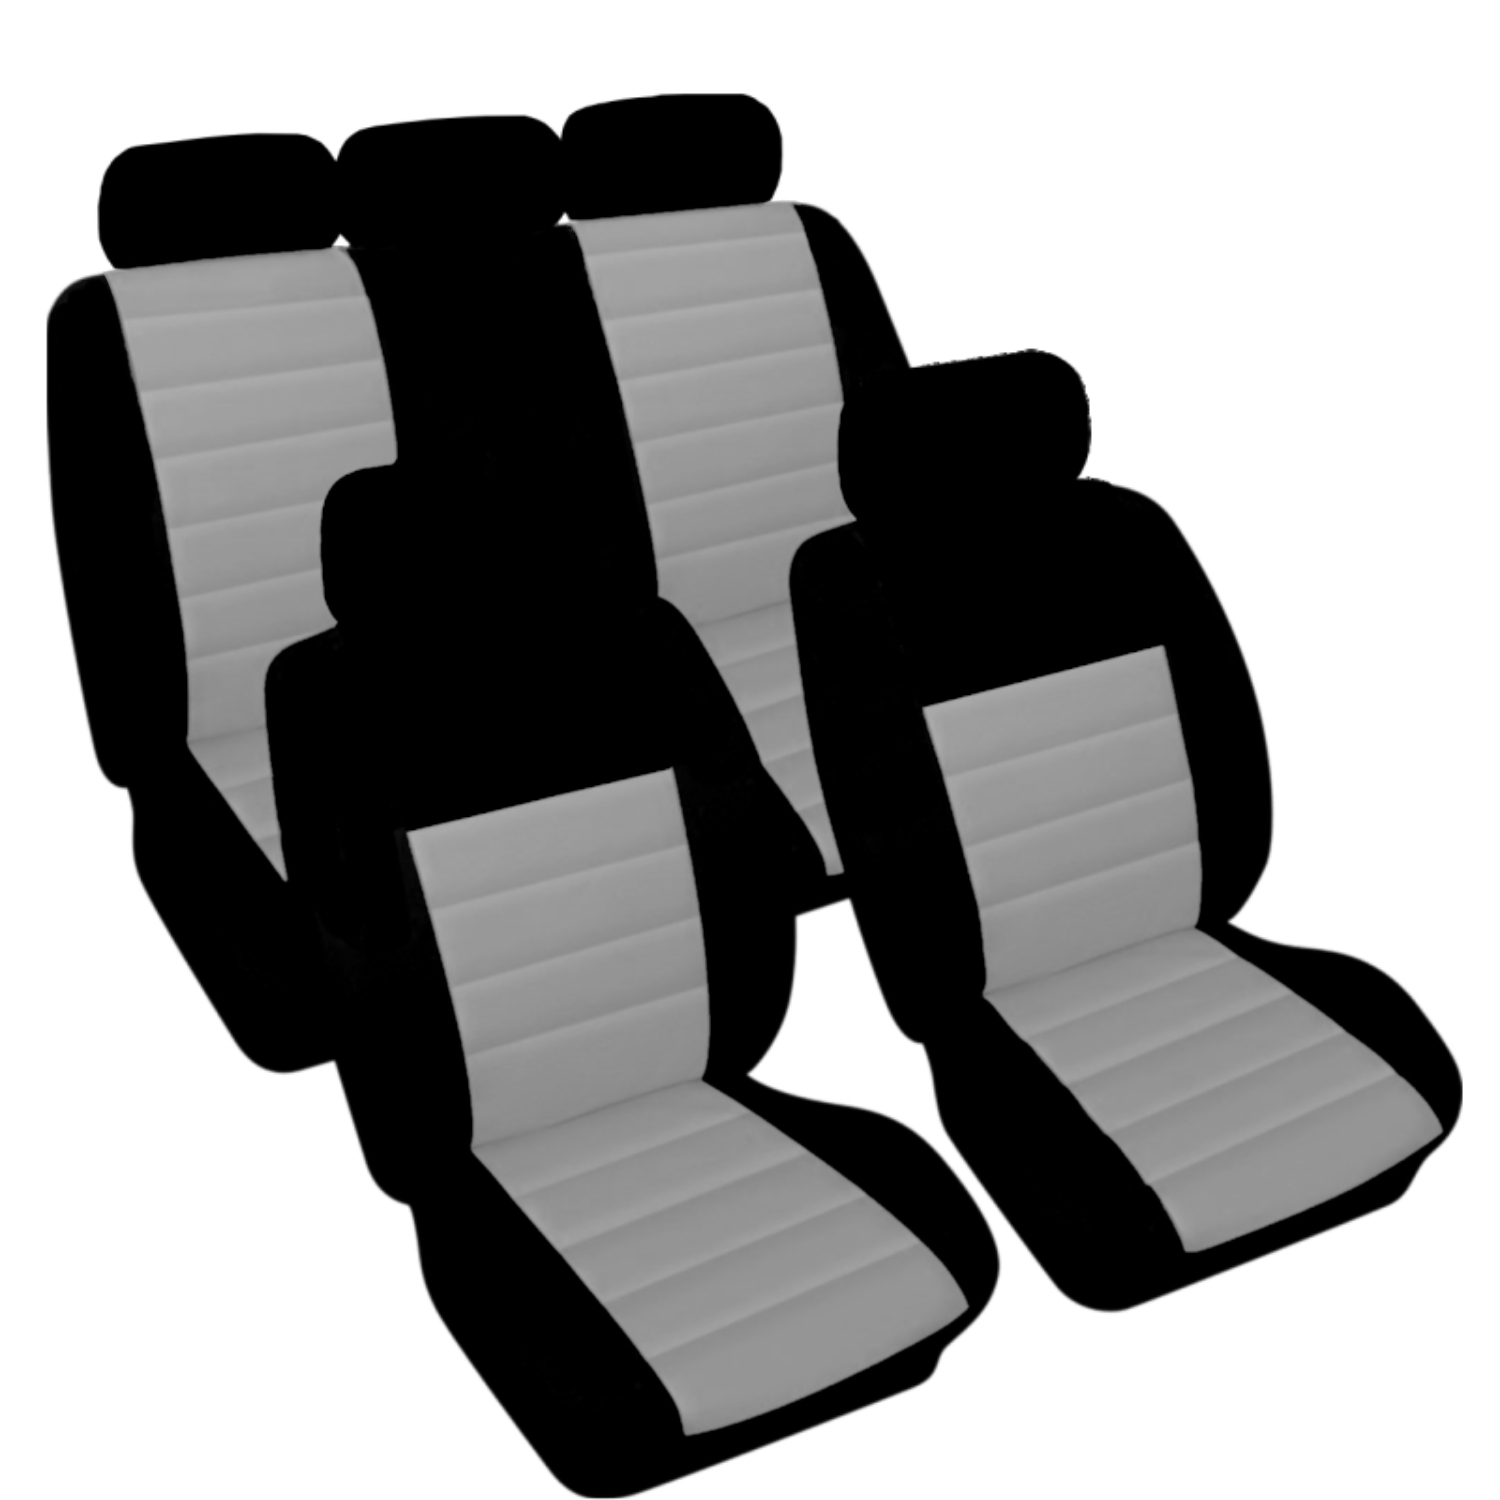 SB401 - Car Seat Cover set protector with SIDE AIRBAG BLACK / GREY